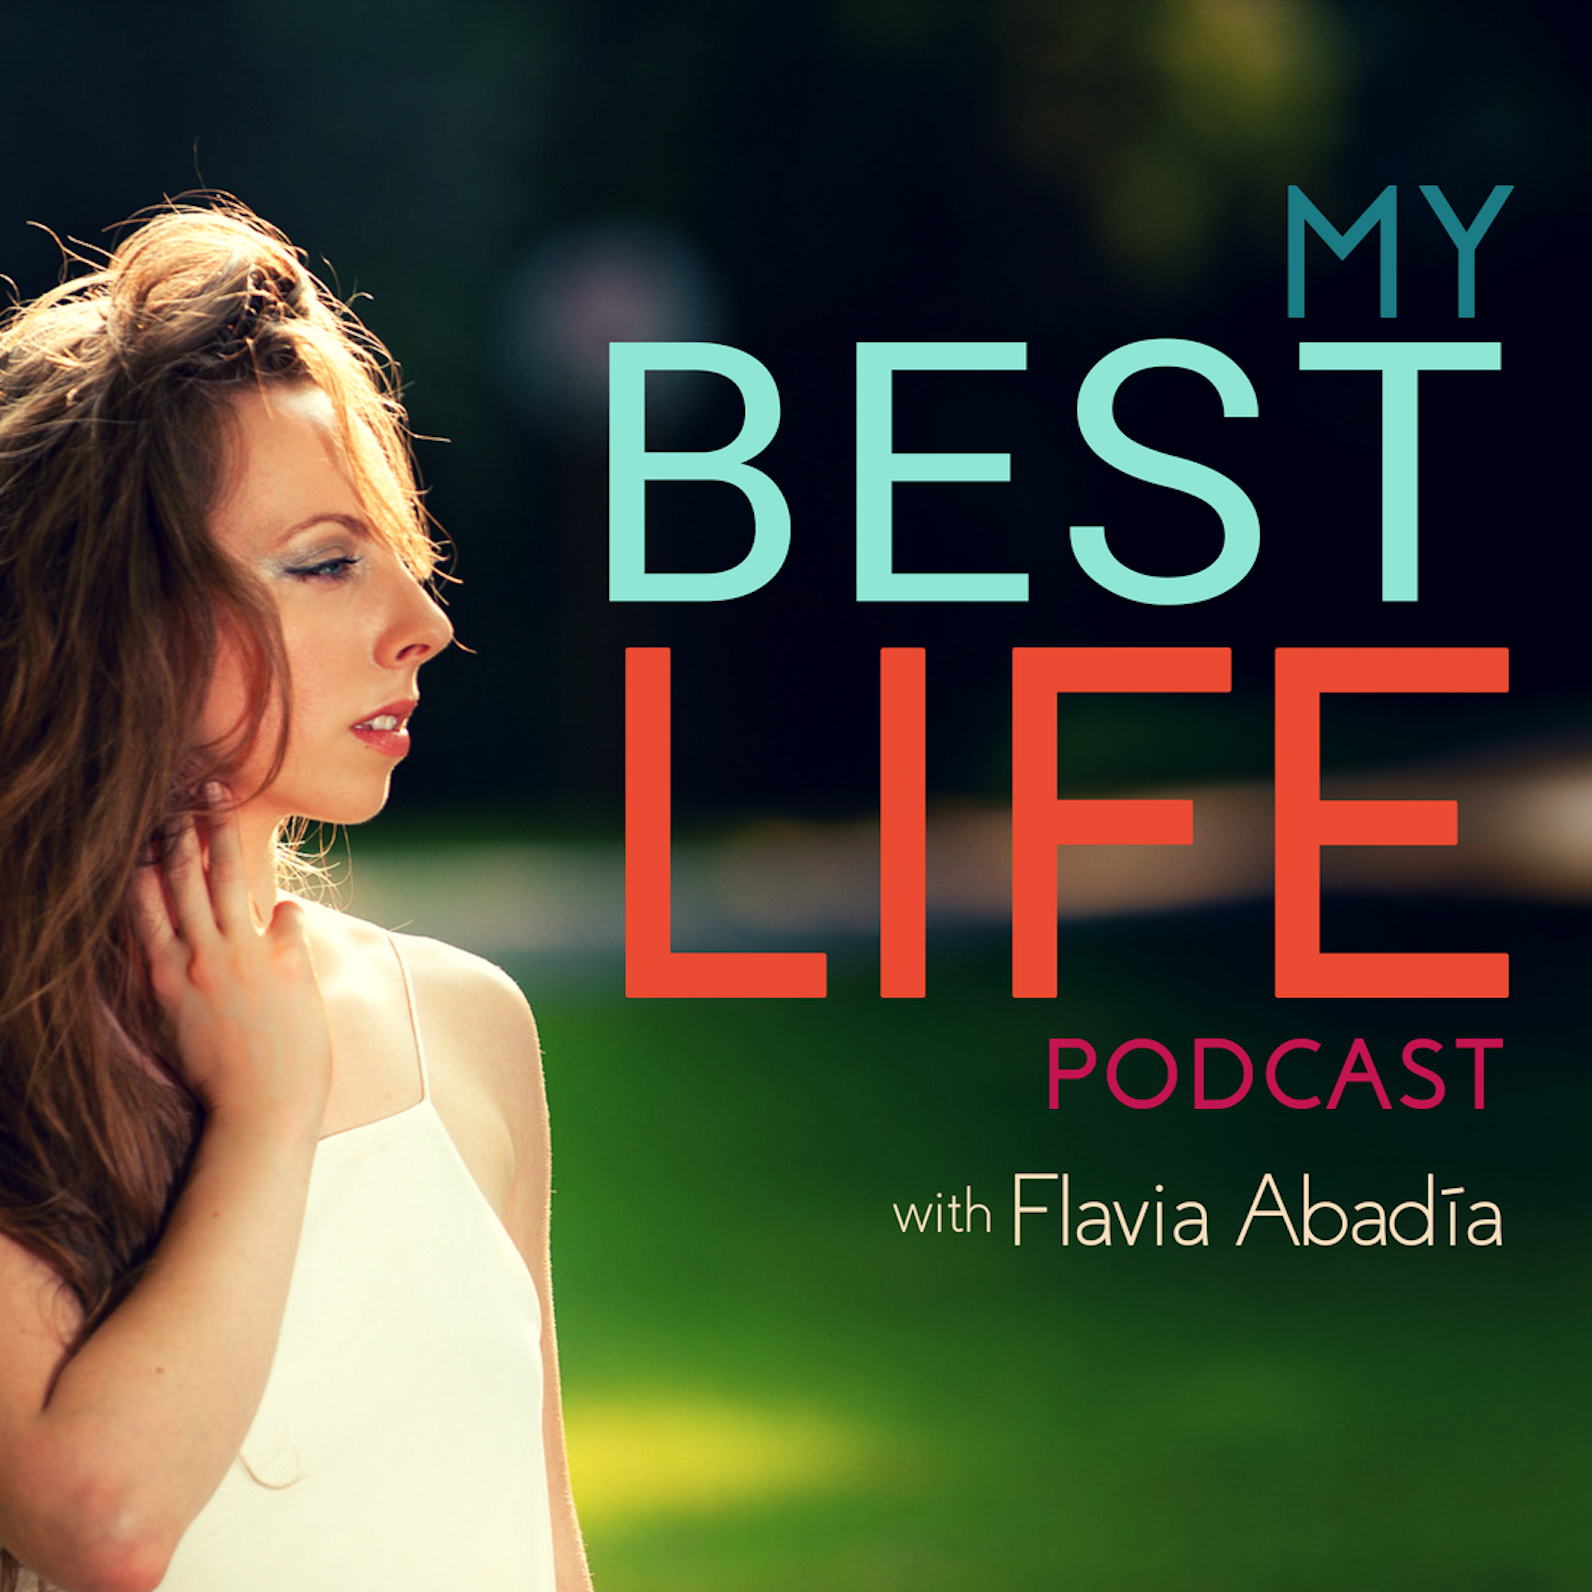 My Best Life Podcast | Inspiration | Motivation | Entrepreneurship | Confidence | Self-Love | Self Help | Happiness | Positive Thinking with Flavia Abadia